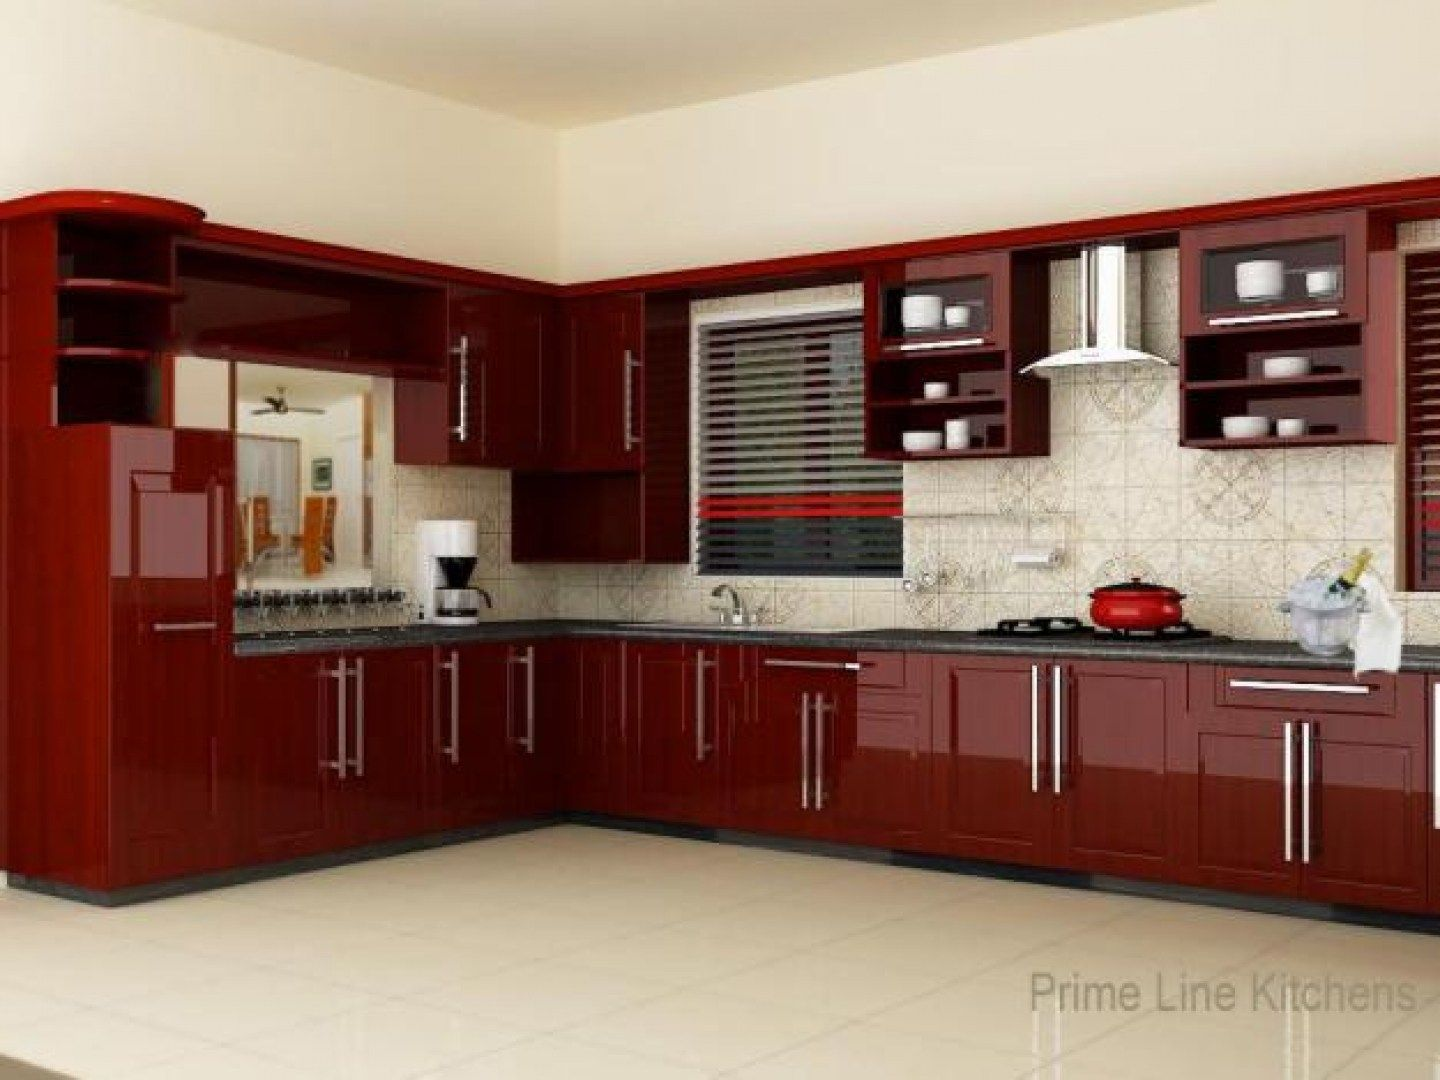 Kitchen design ideas kitchen woodwork designs hyderabad for Model kitchen images